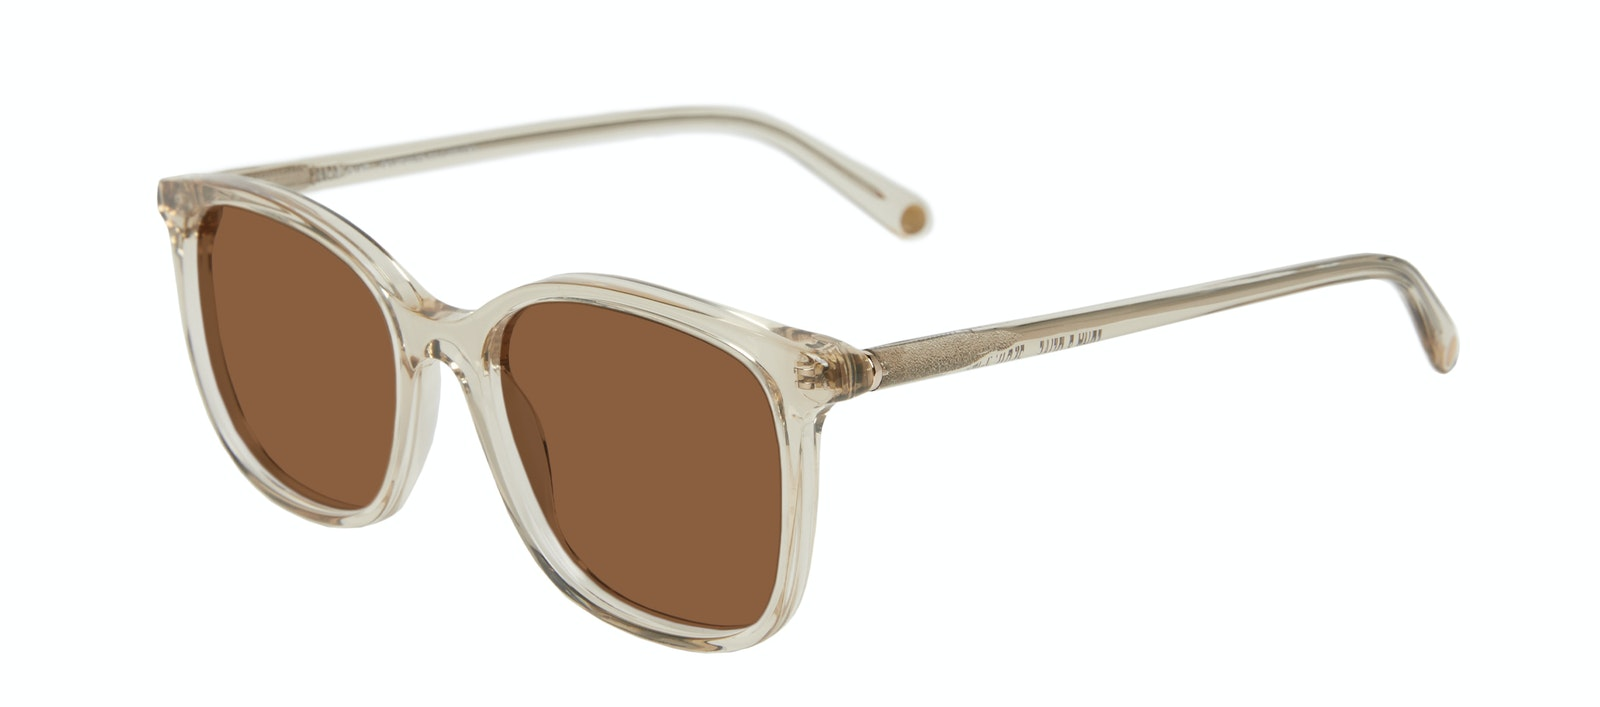 Affordable Fashion Glasses Square Sunglasses Women Luna Olive Tilt